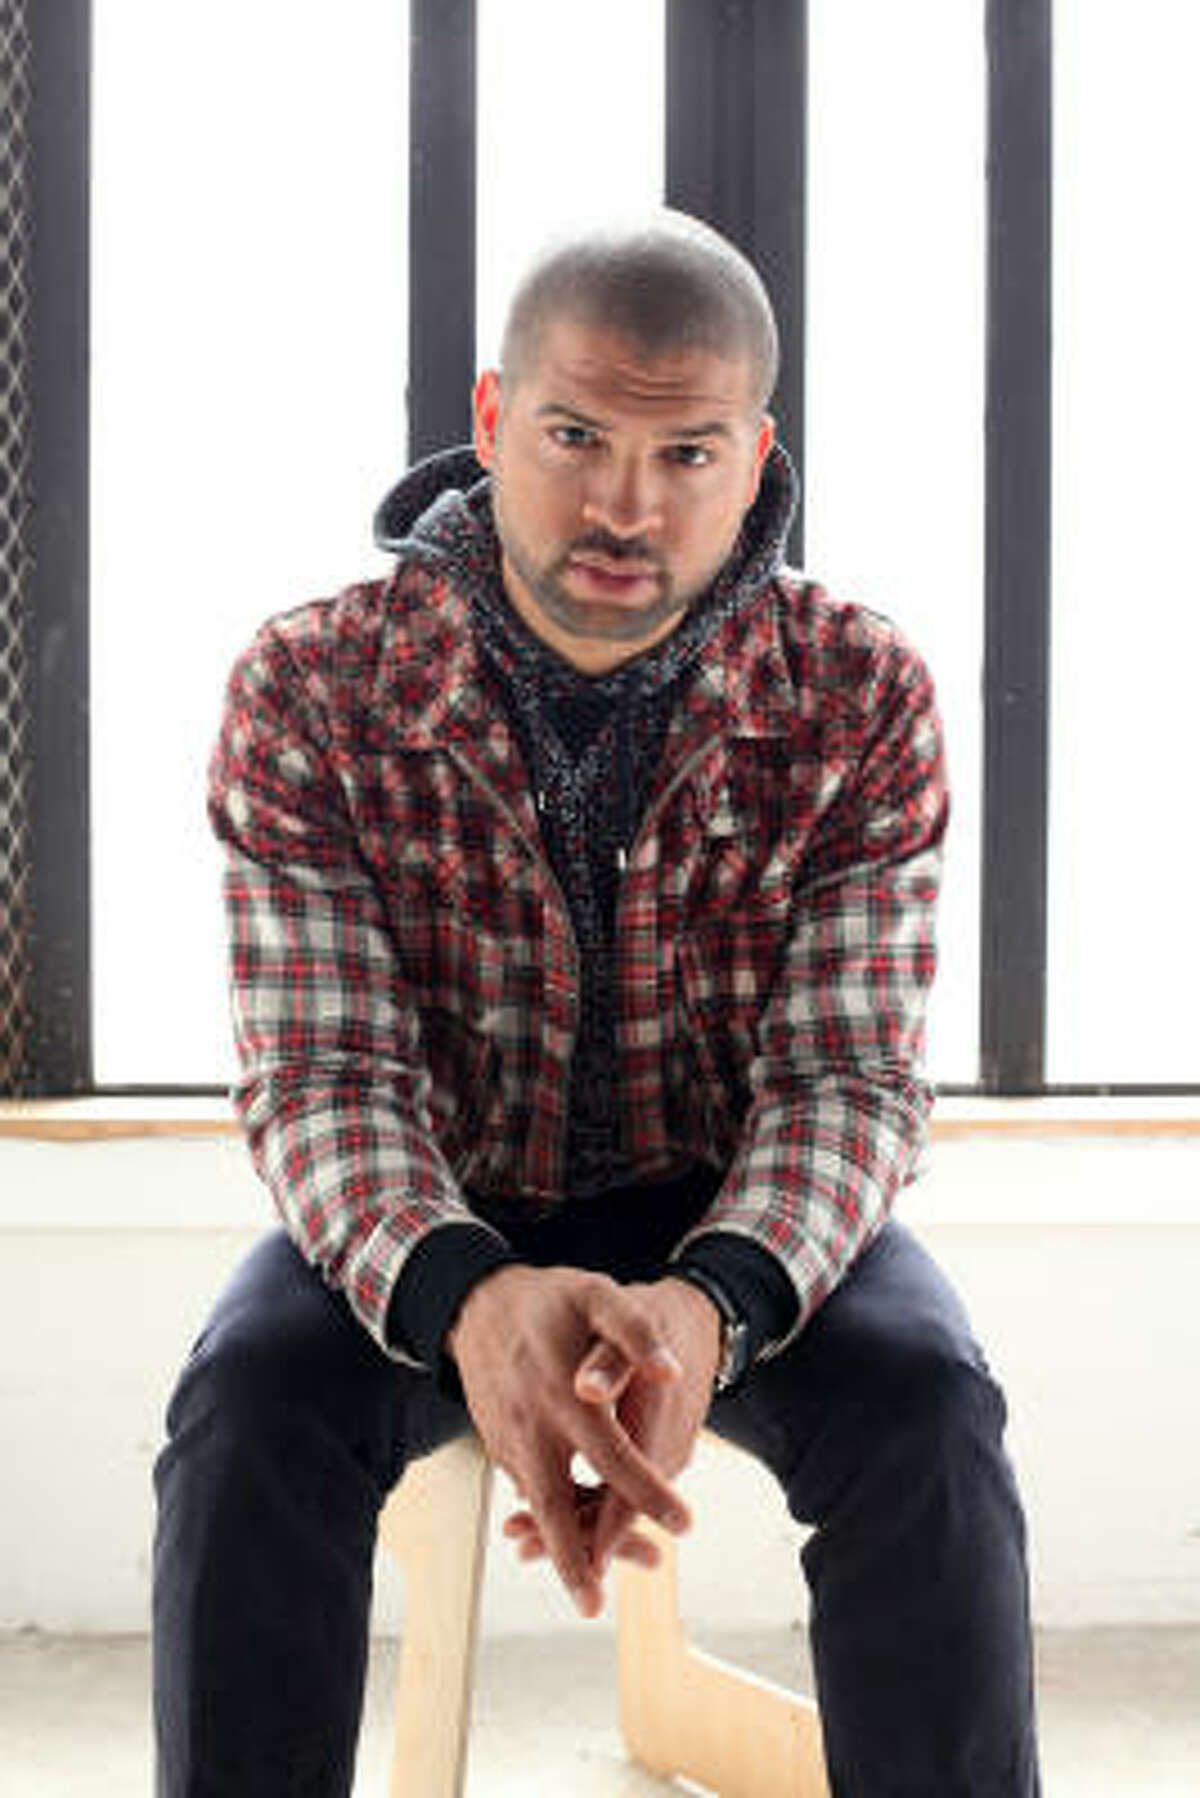 Jason Moran grew up in the Third Ward and graduated from the High School for the Performing and Visual Arts.